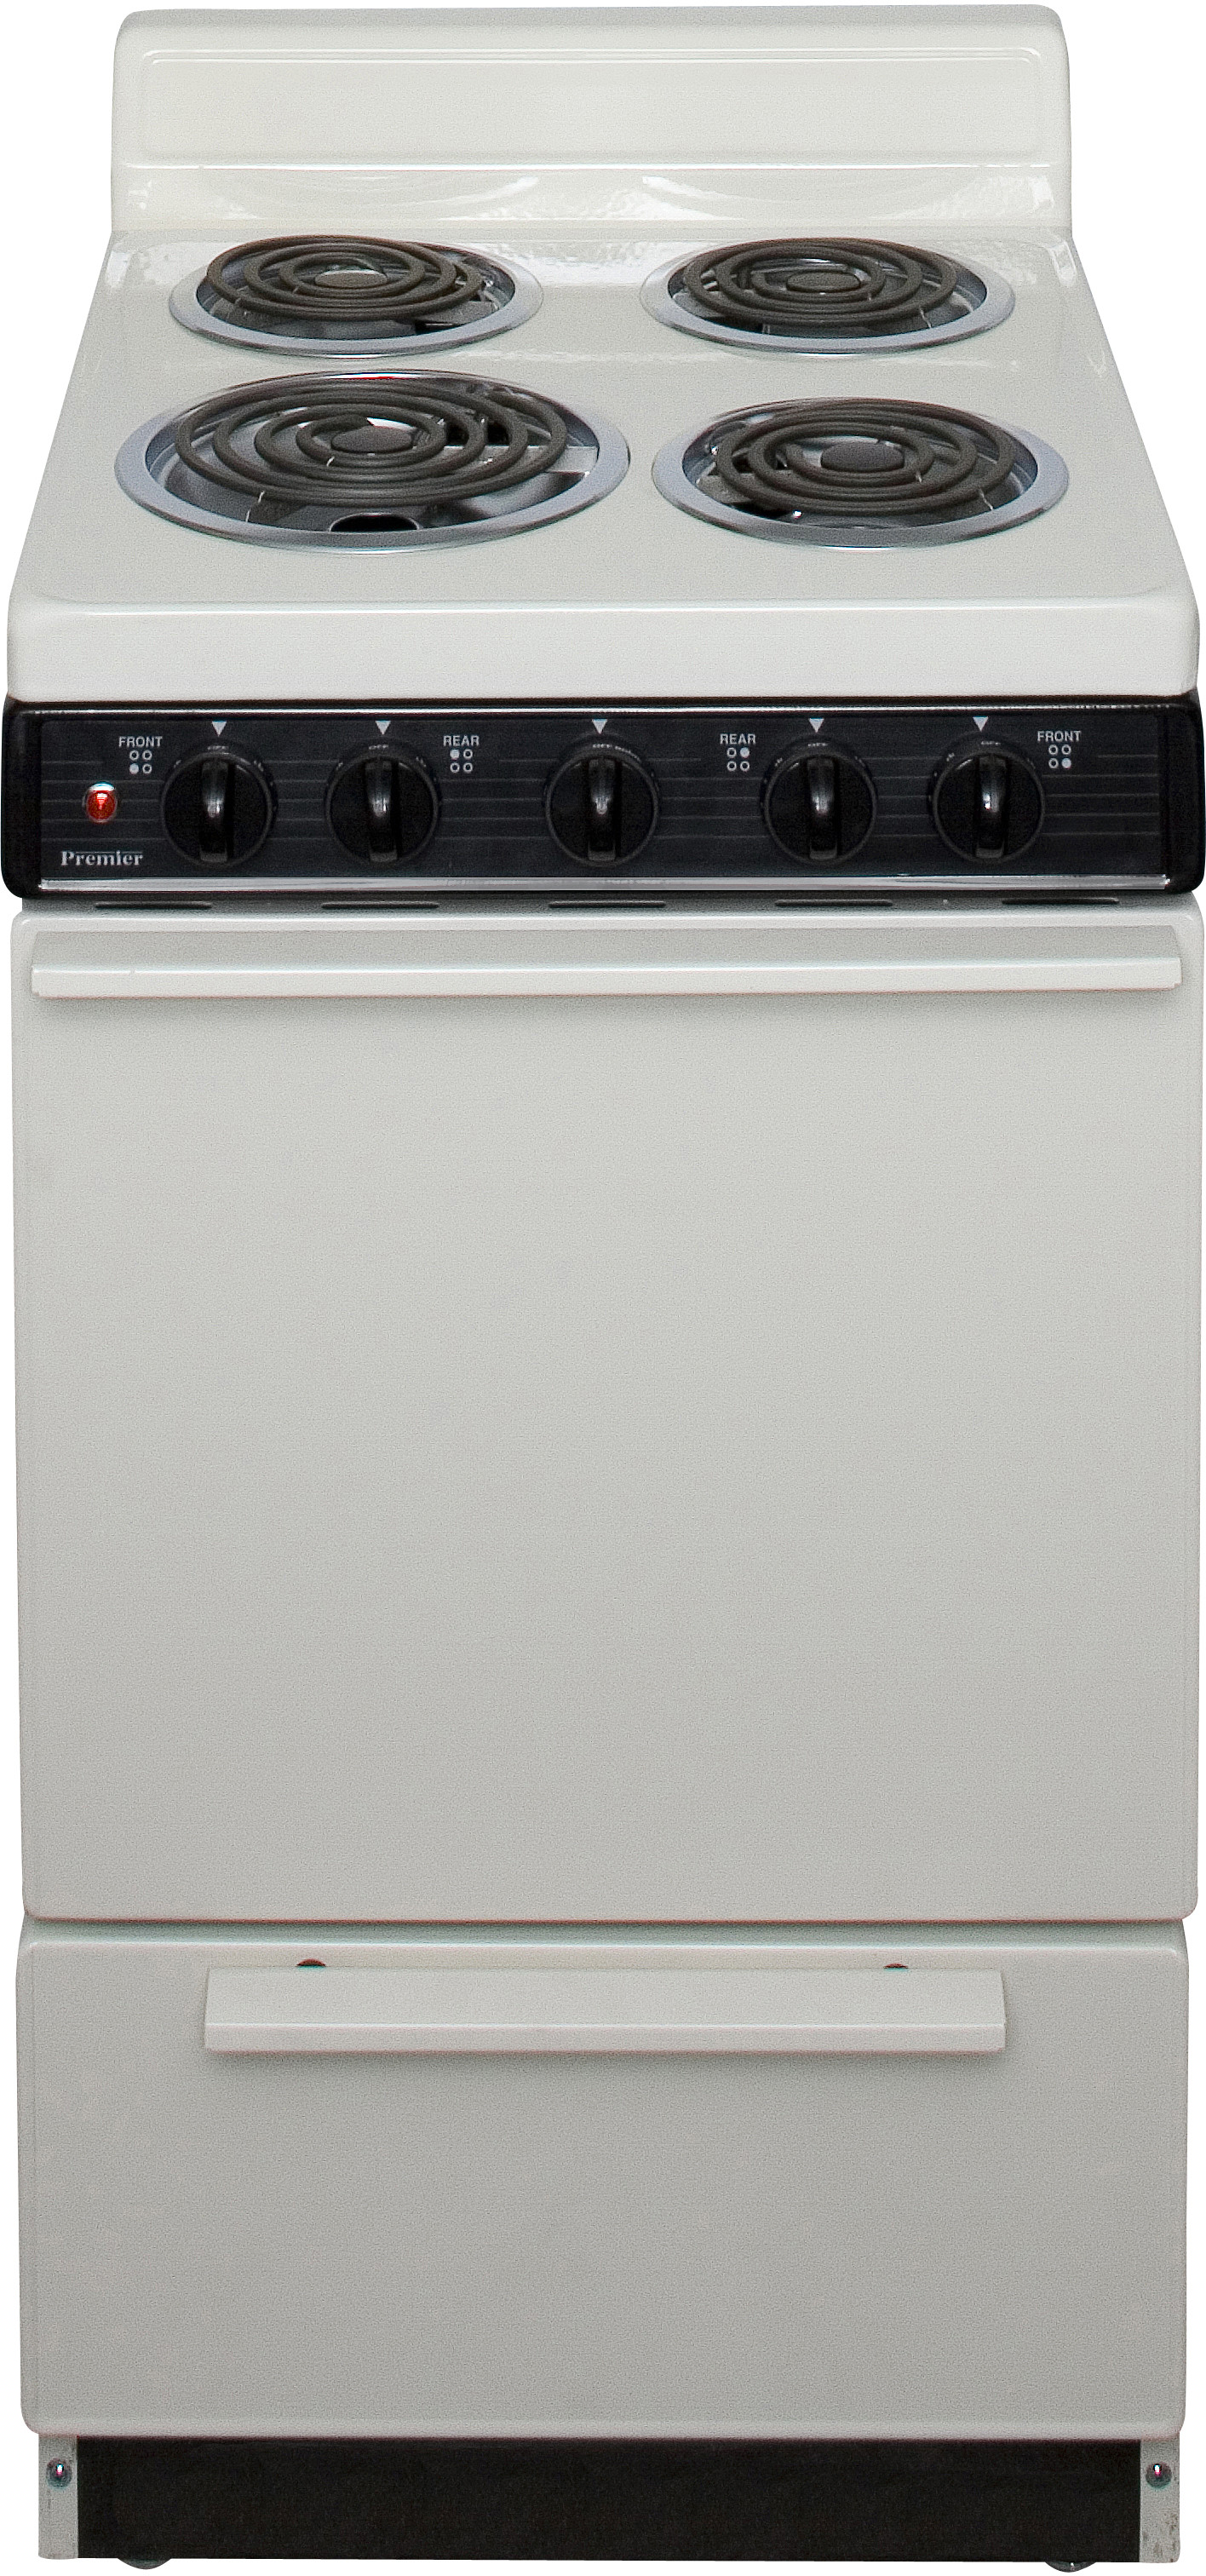 Uncategorized Premier Range Kitchen Appliances premier 20 inch ranges